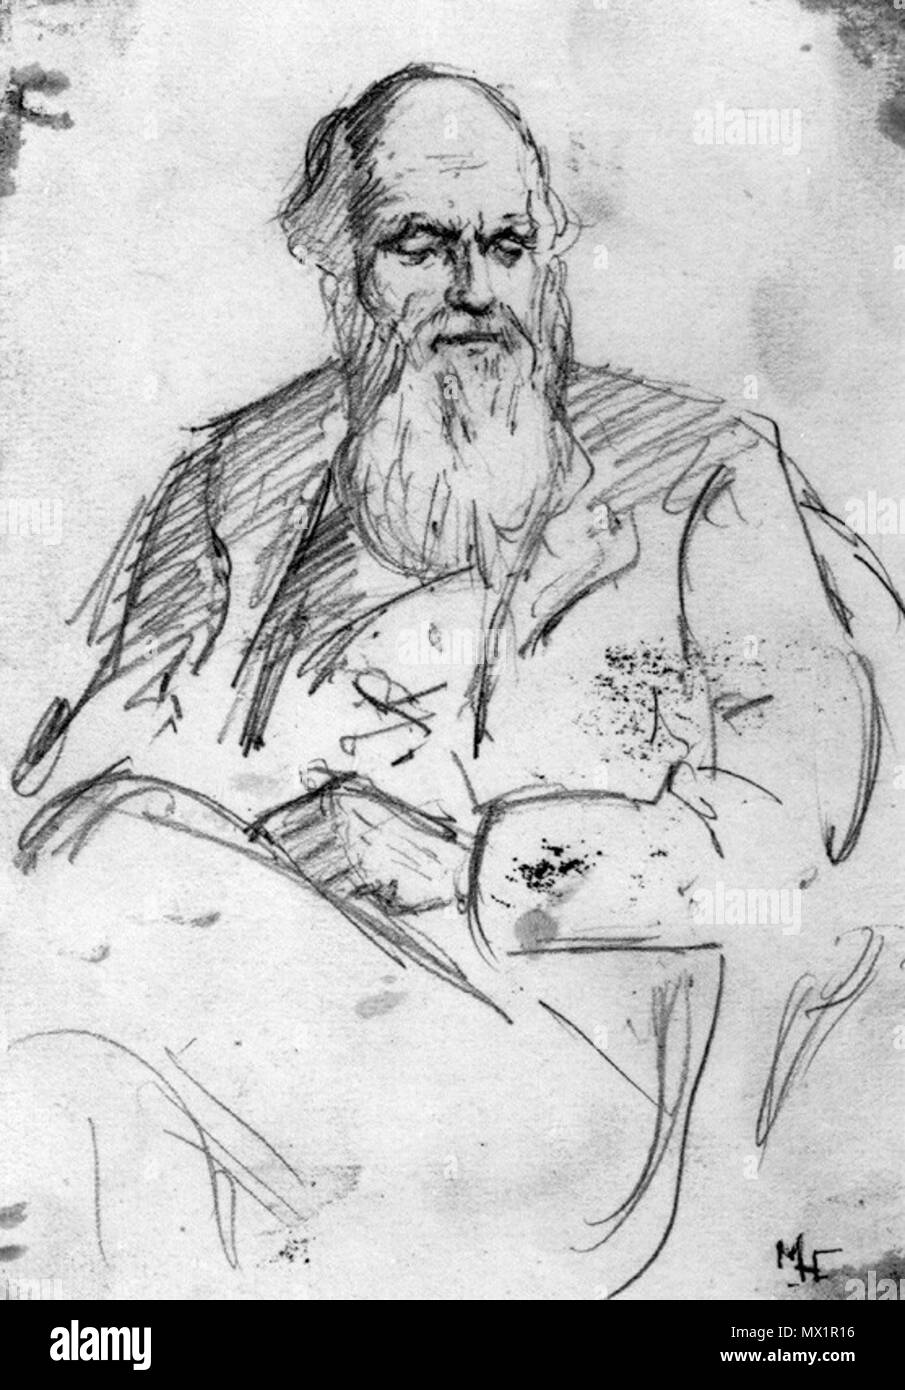 English a pencil sketch of charles darwin 7 1 8 in x 4 7 8 in 181 mm x 124 mm 1878 marion collier née huxley 1859 1887 154 charles darwin sketch